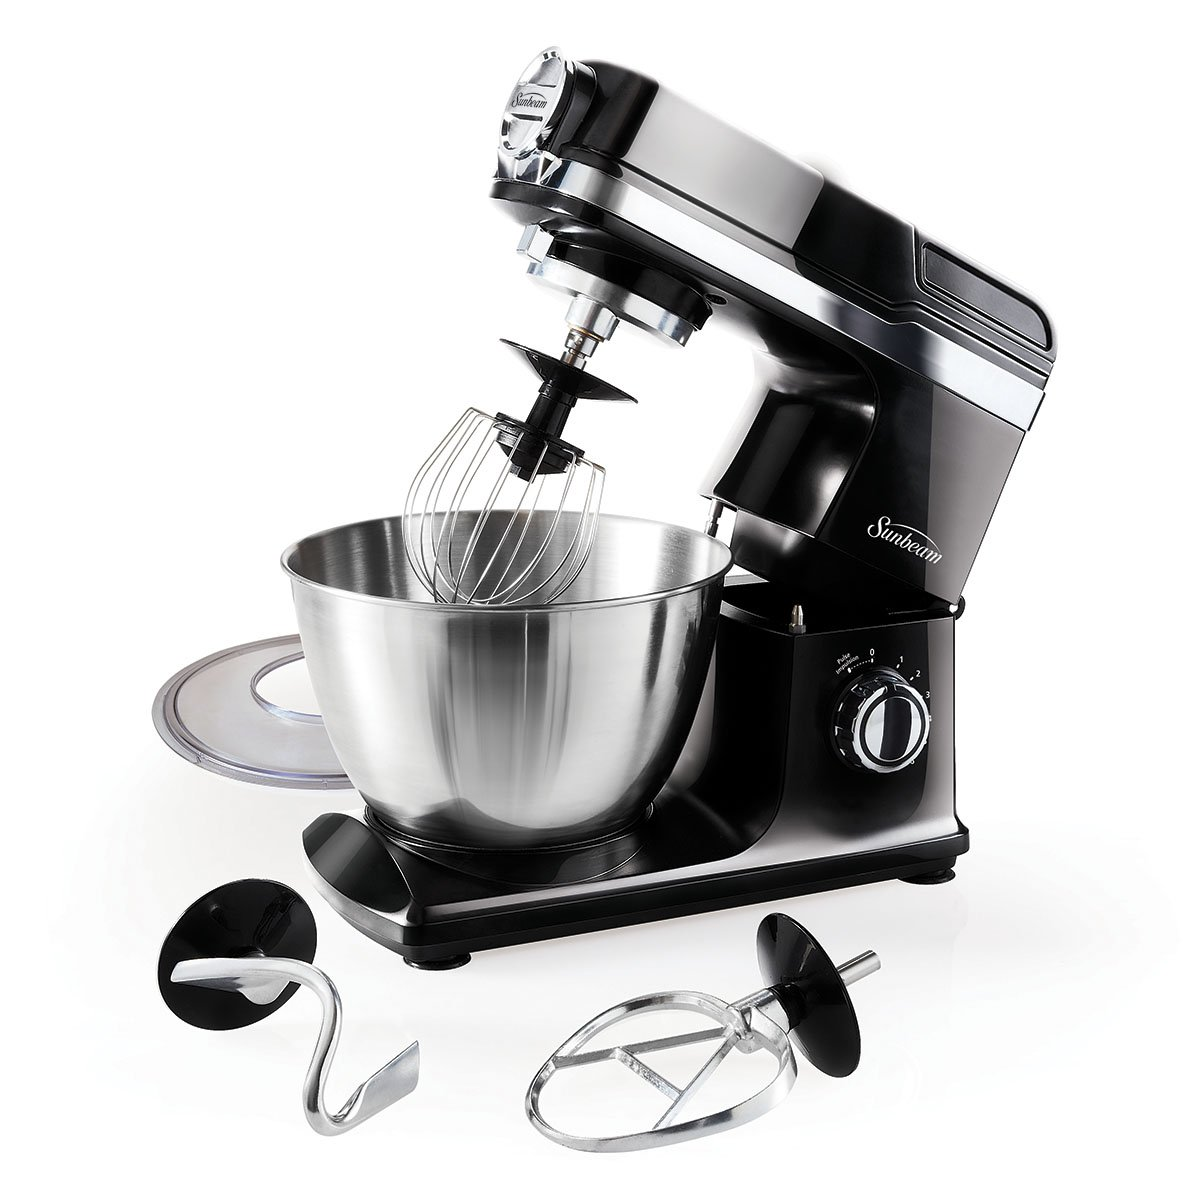 planetary mixer instructions The planetary action of blakeslee mixers (beater travels around the  circumference of the bowl as it rotates) assures you of a perfectly blended mix  every time.